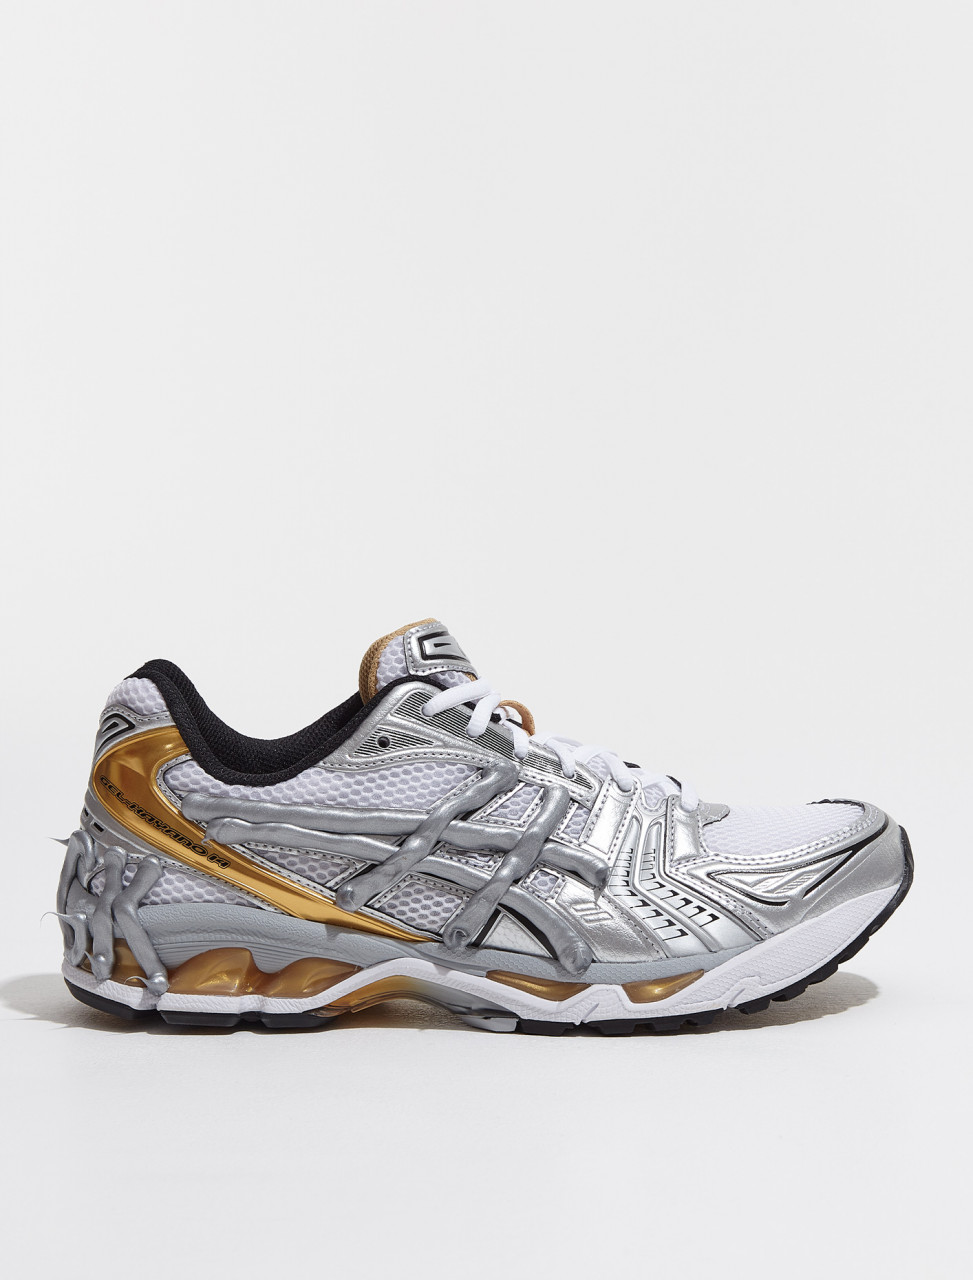 1201A019 102 ASICS GEL KAYANO 14 WHITE PURE COLD